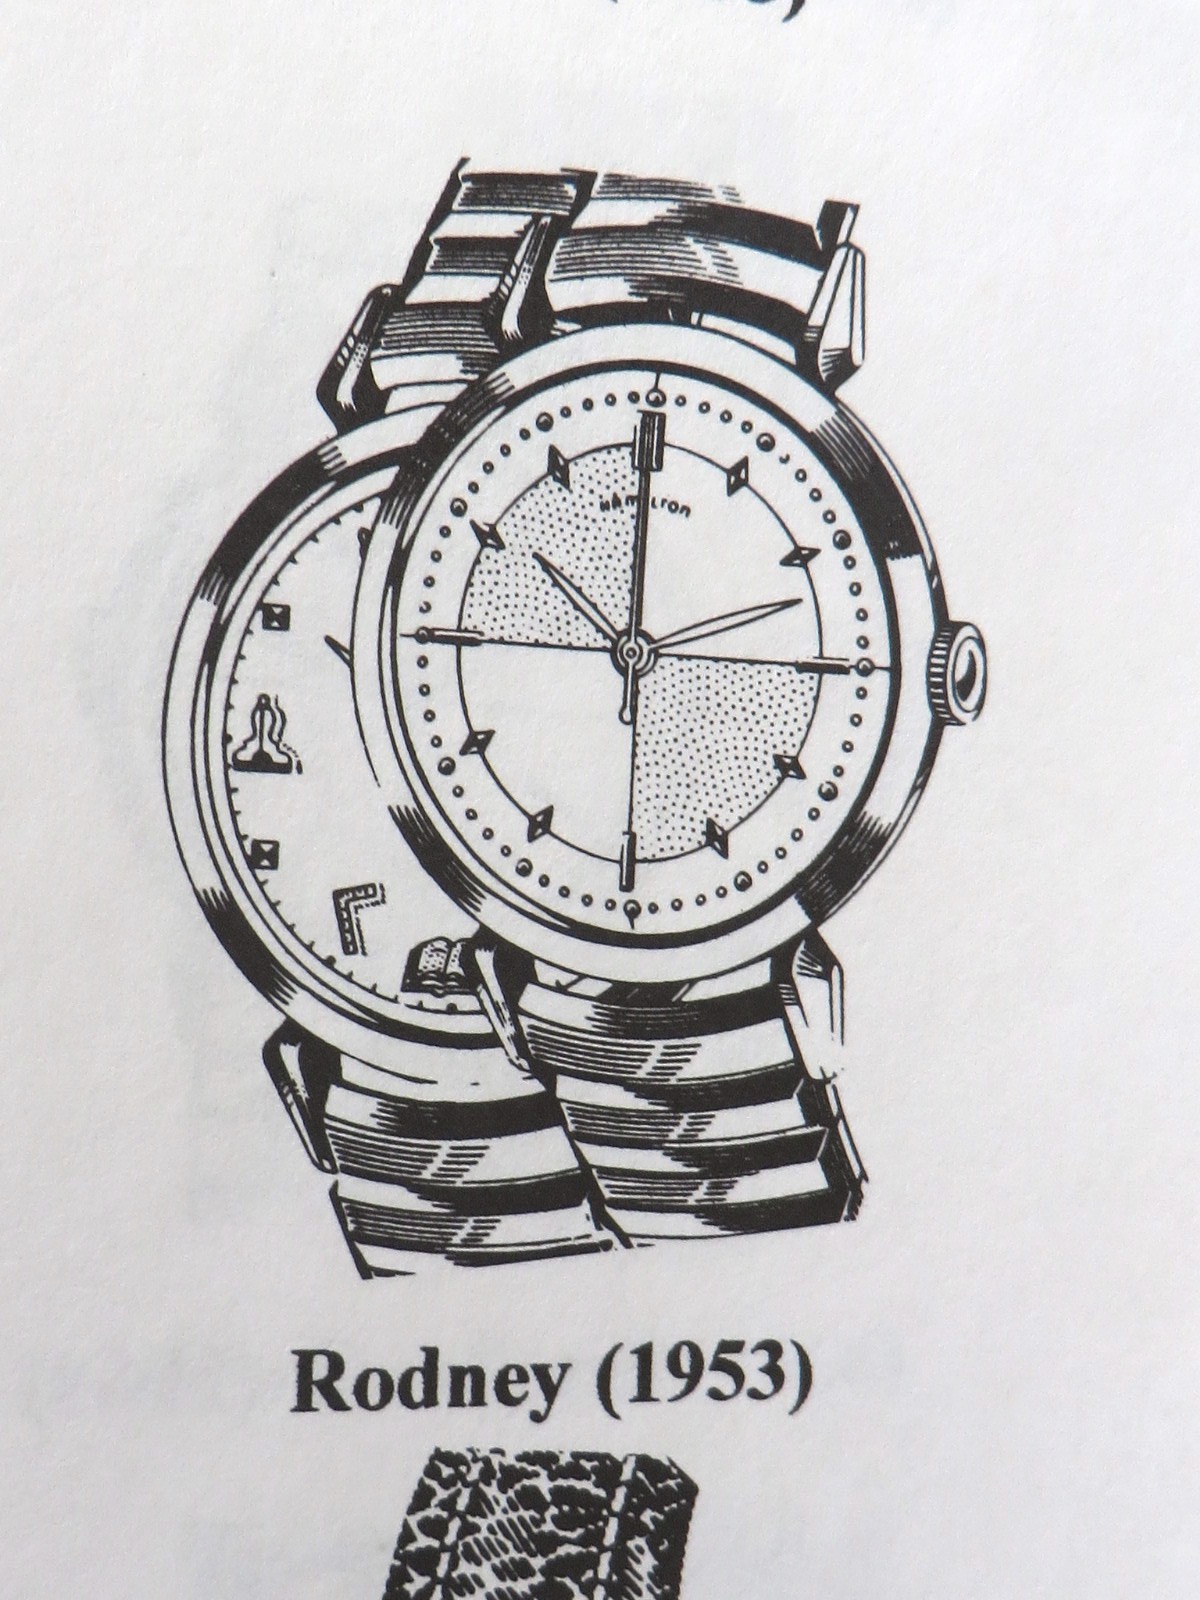 92e6202da The Hamilton Rodney is is going to be your best bet as it was a regular  cataloged dial option. There are usually one or two on eBay at any given  time.